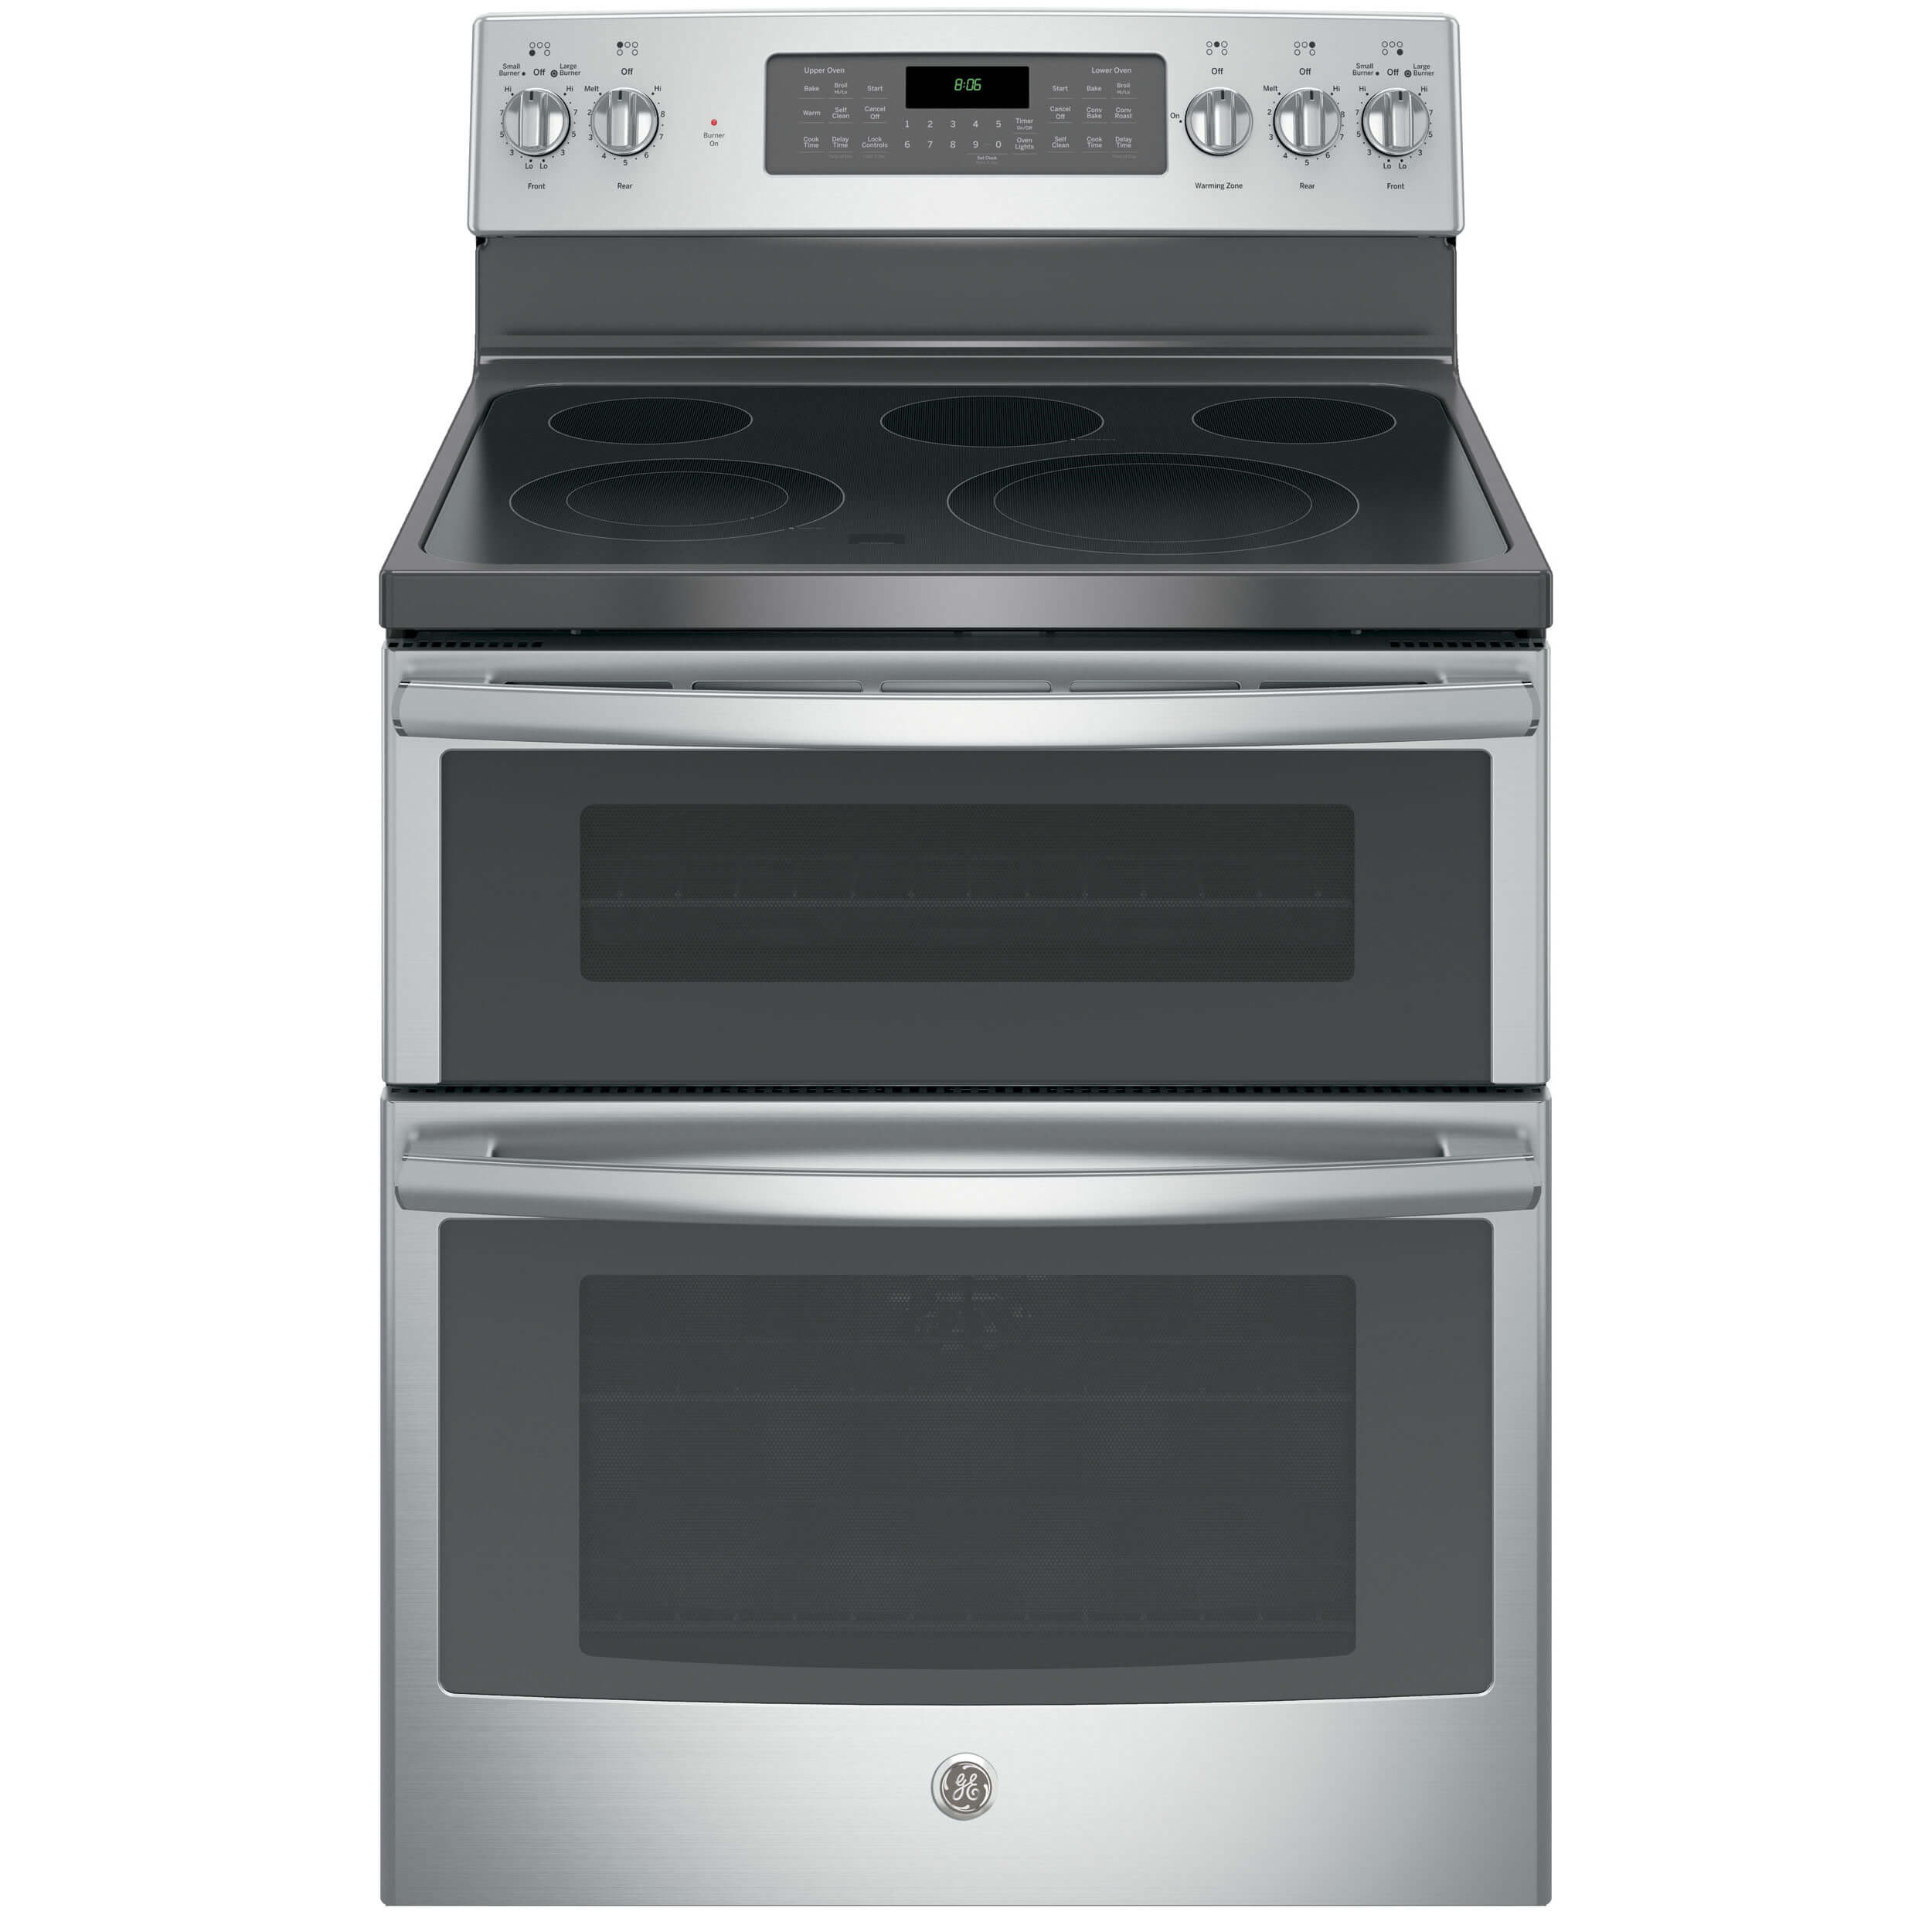 Front view of the 6.6 cubic foot stainless steel GE double oven range- JB860SJSS